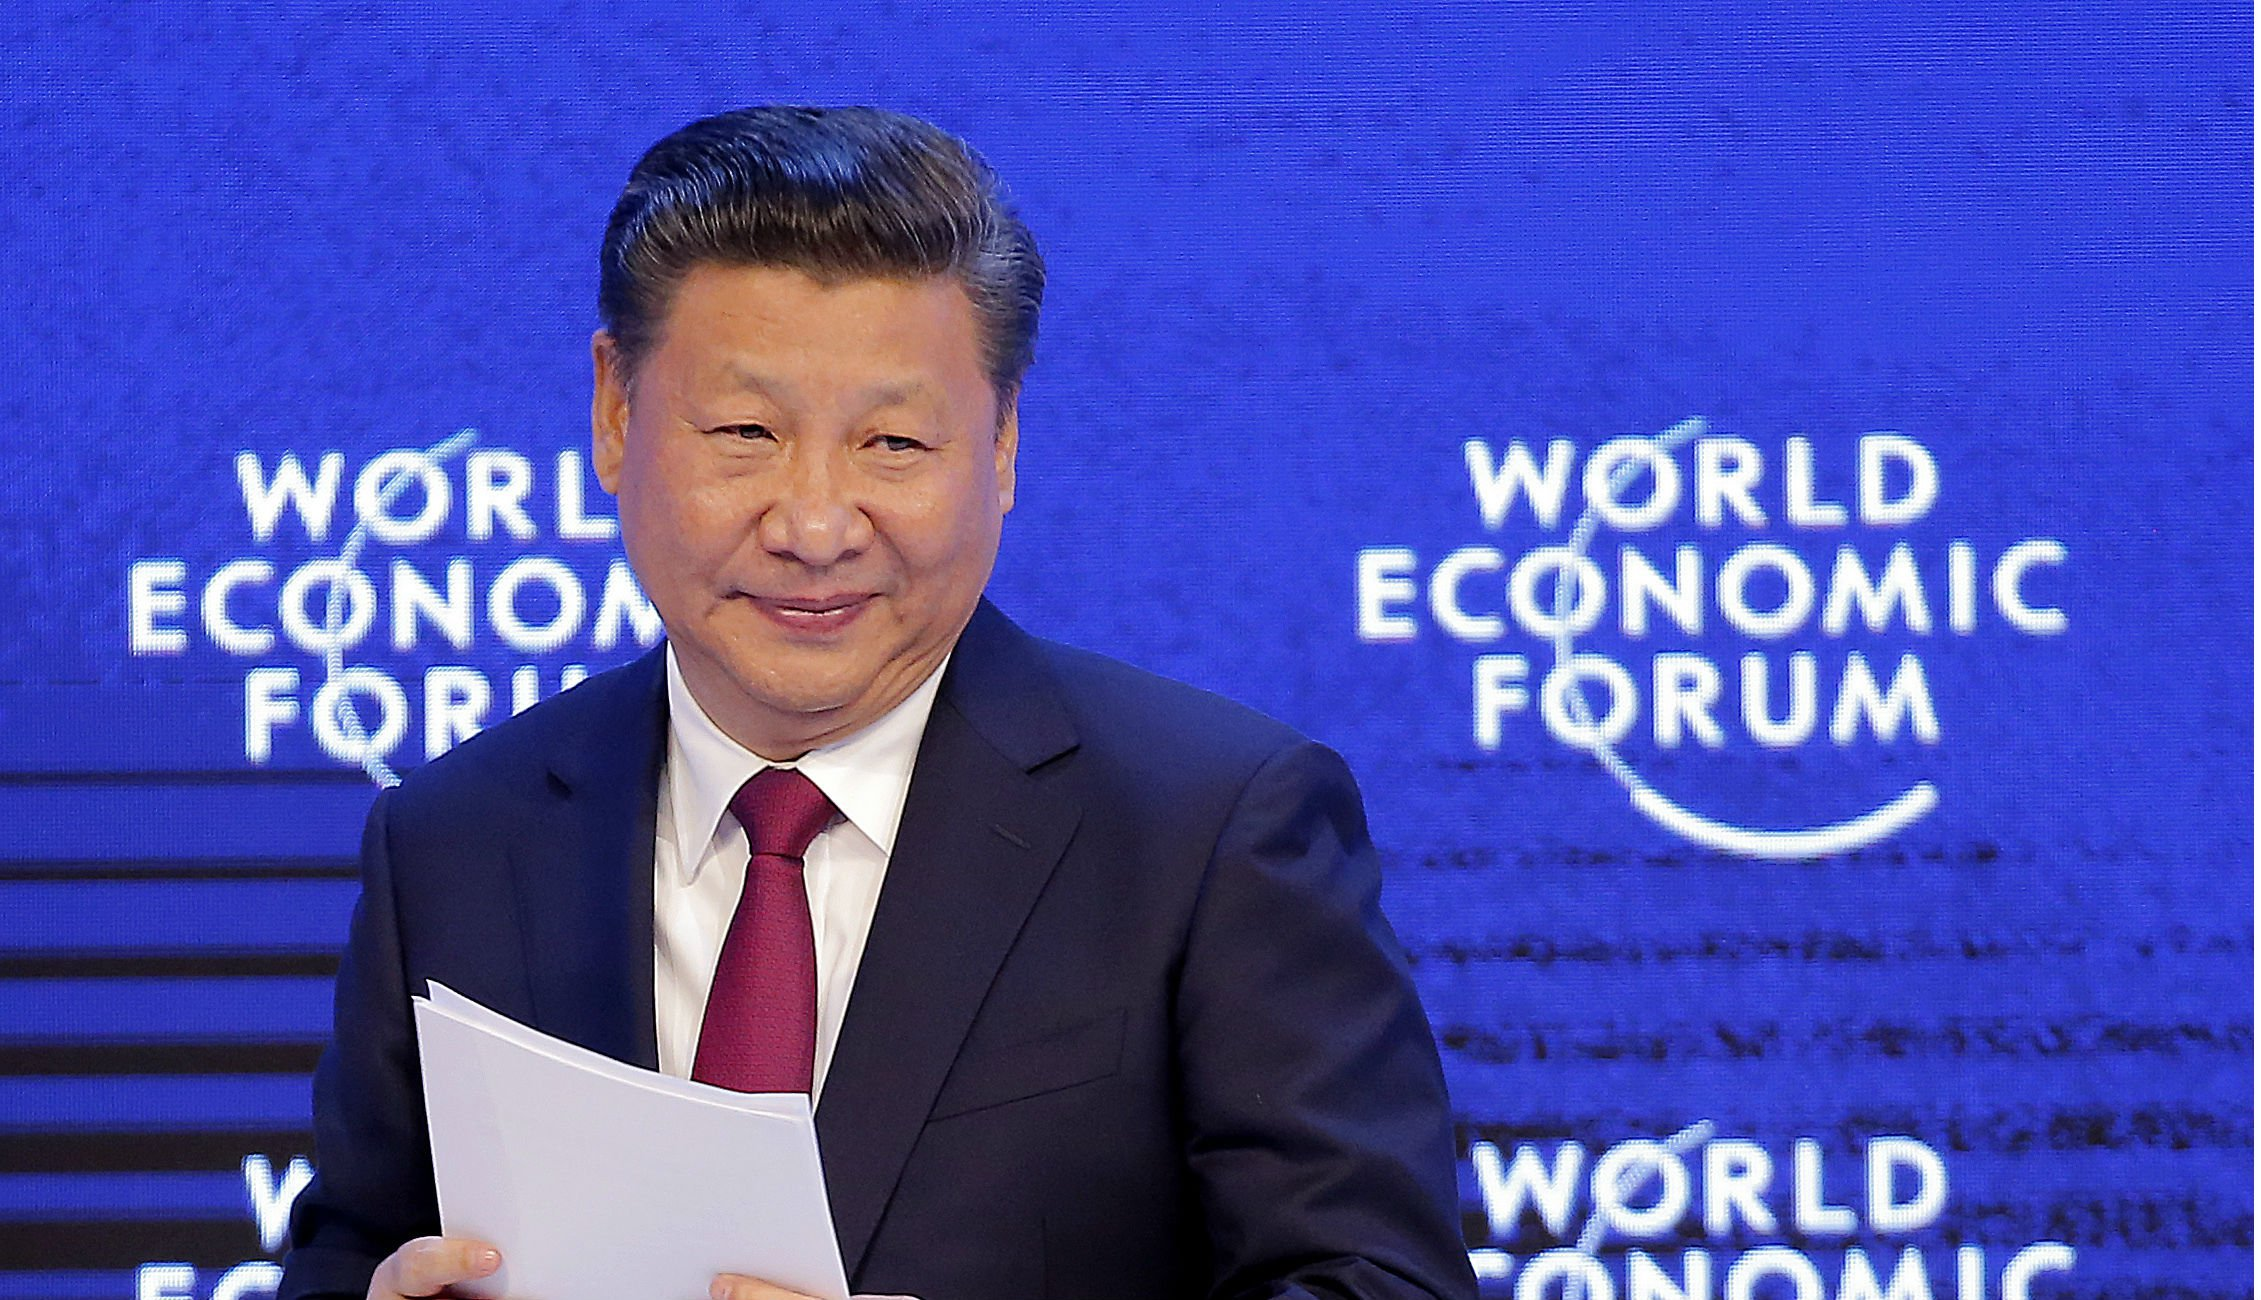 Chinese president Xi Jinping at World Economic Forum in Davos.jpg